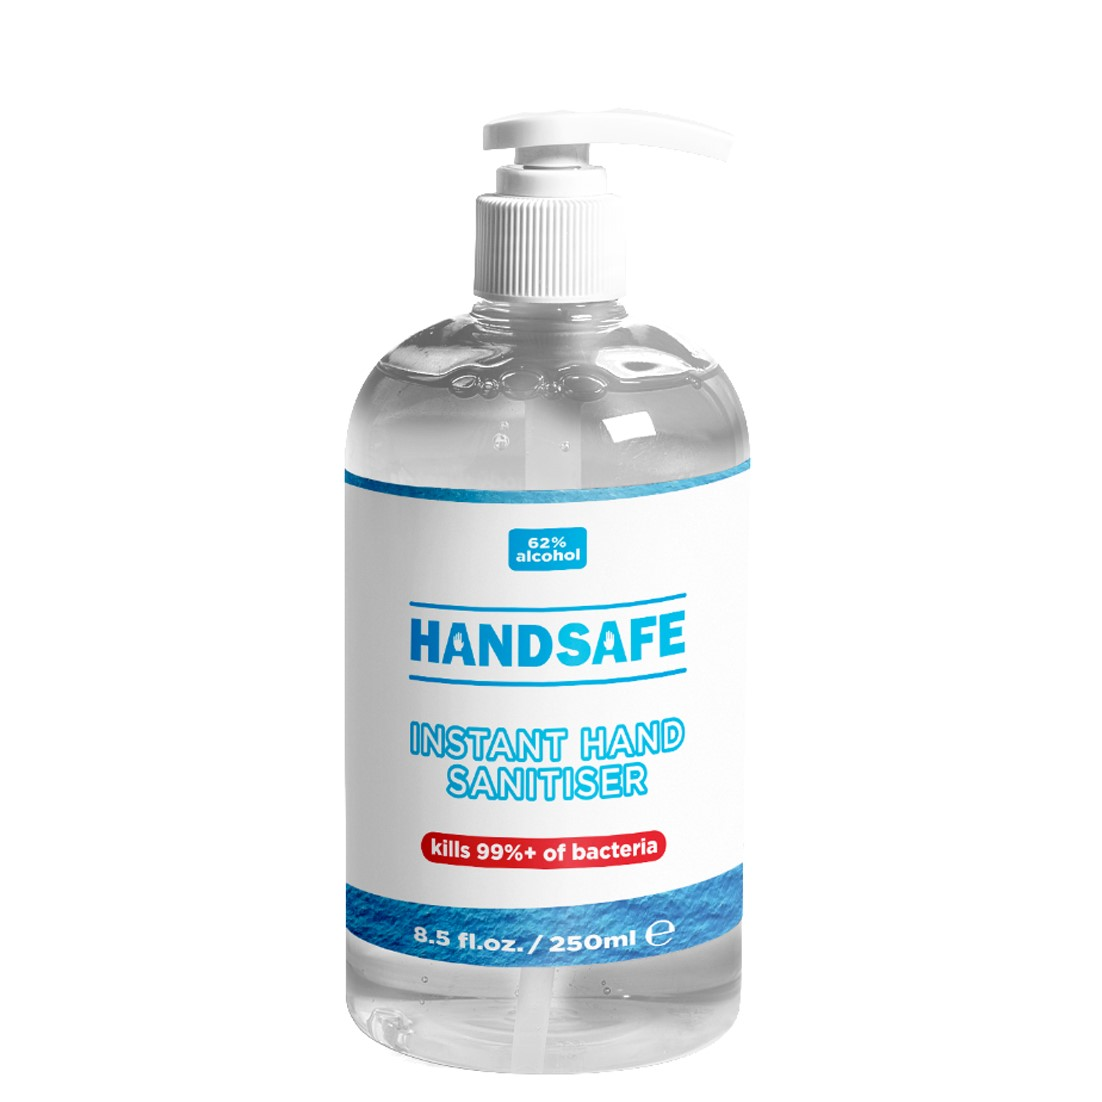 637286075835986460_hand-sanitiser-uk-62pc_250ml_web.jpg